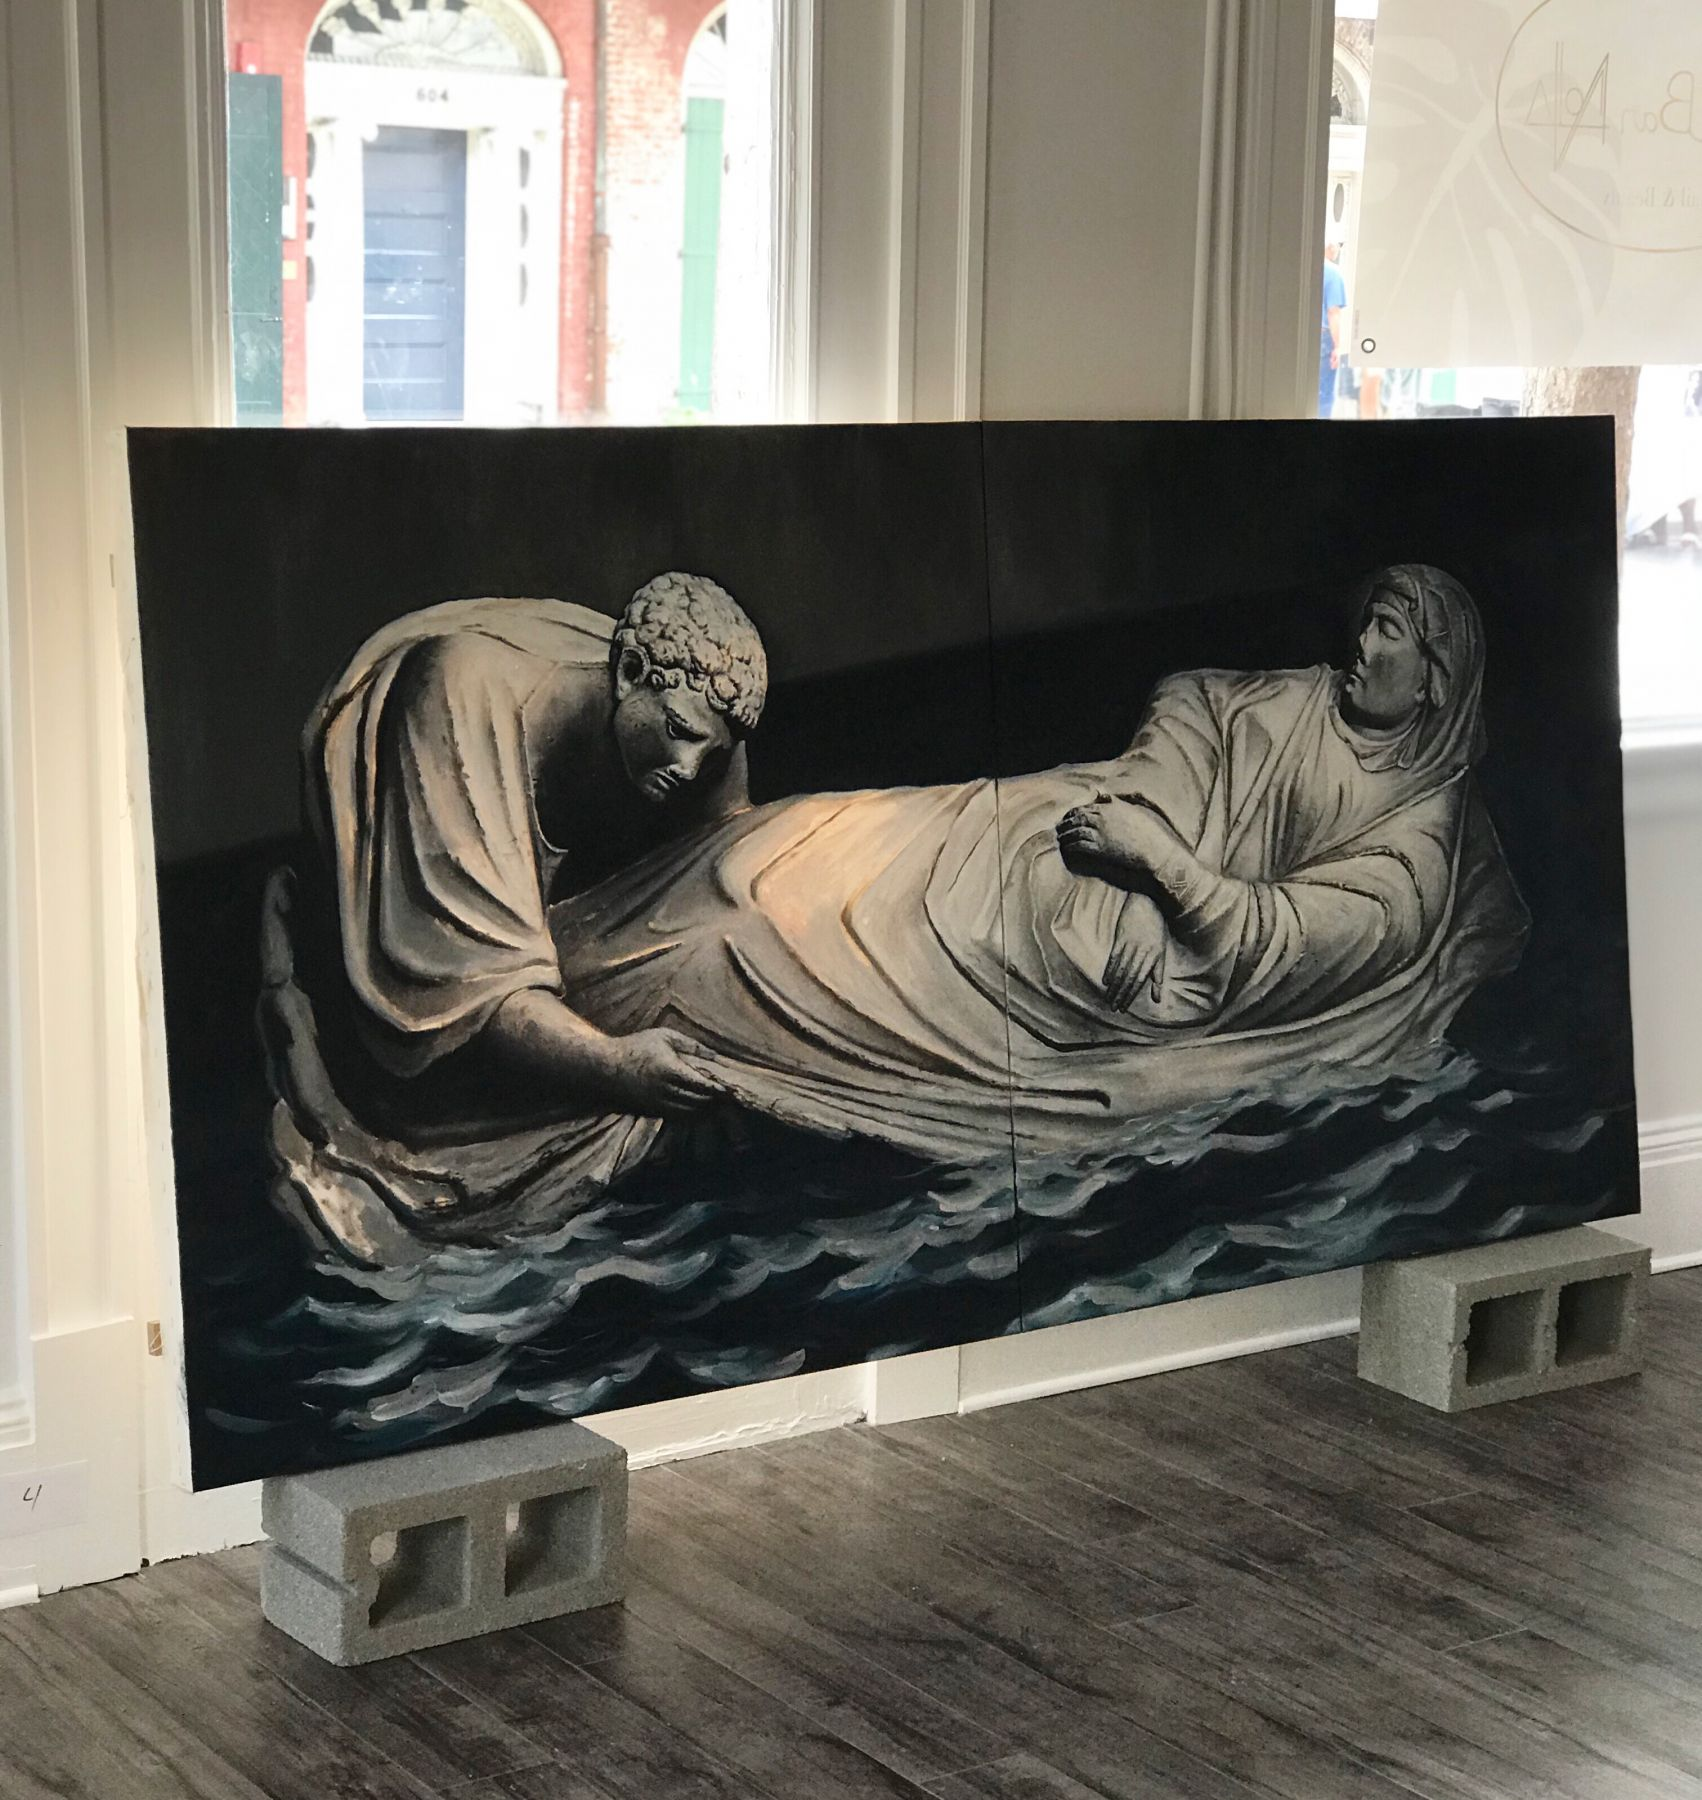 PIKI MENDIZABAL, Dormition of the Virgin (Diptych), 2017